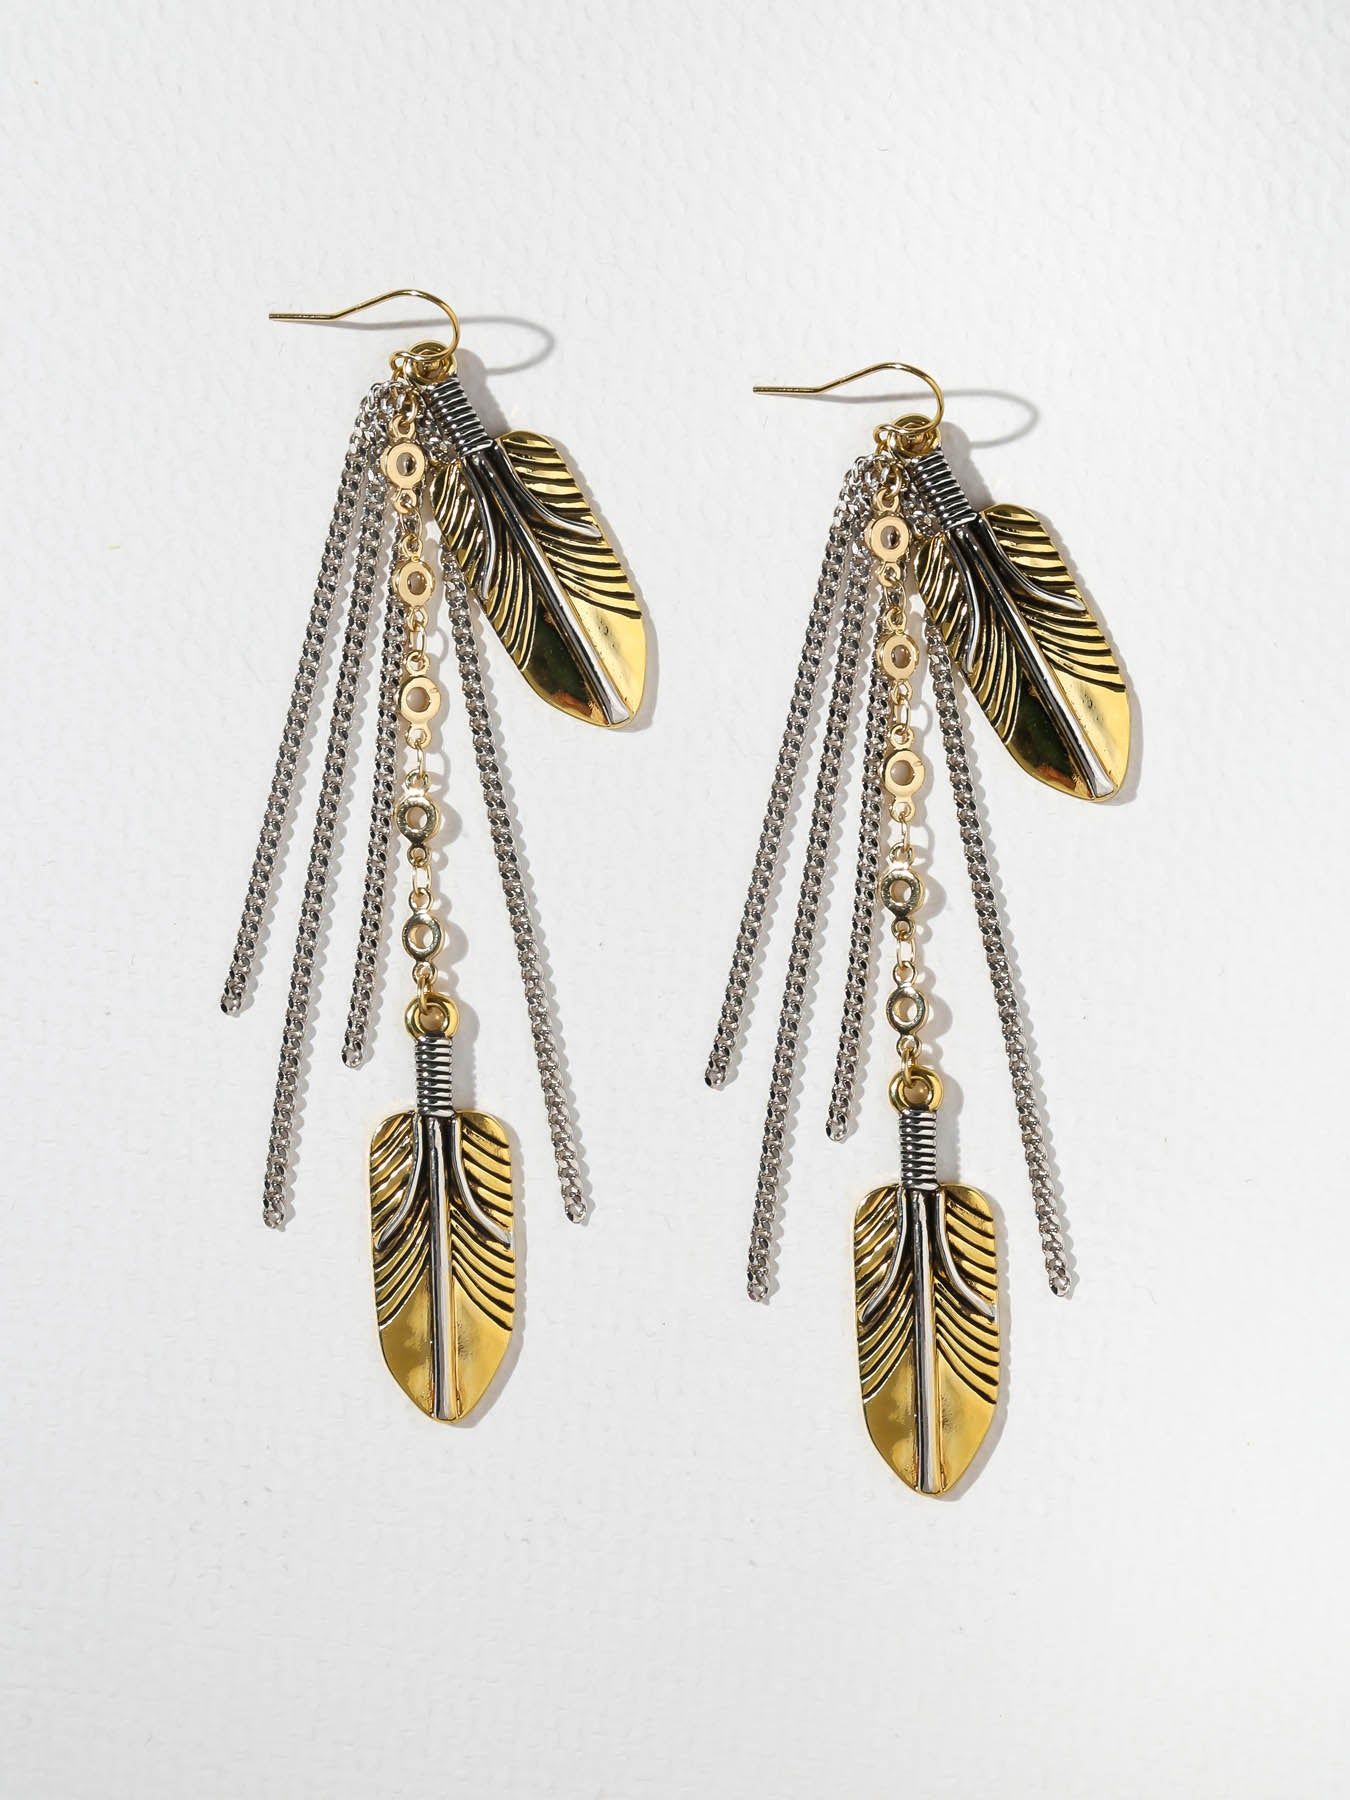 The Pocahontas Drop Earrings